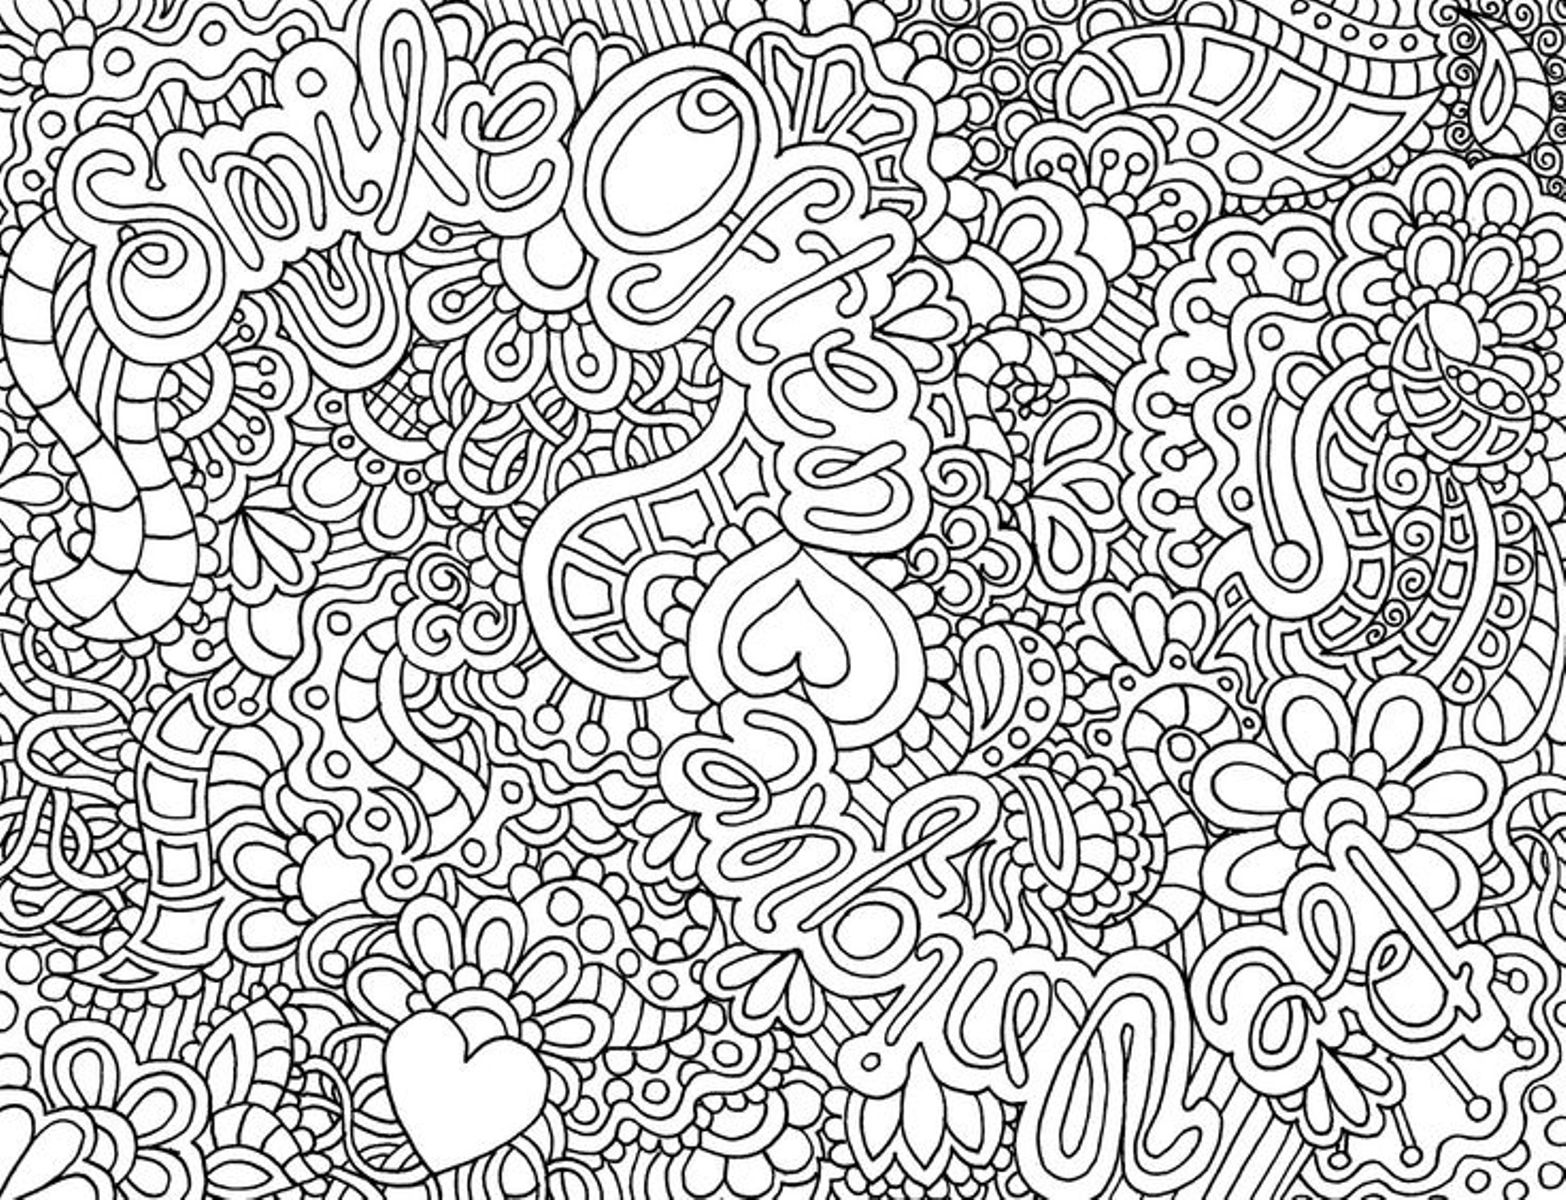 detailed coloring pages - Coling Pages